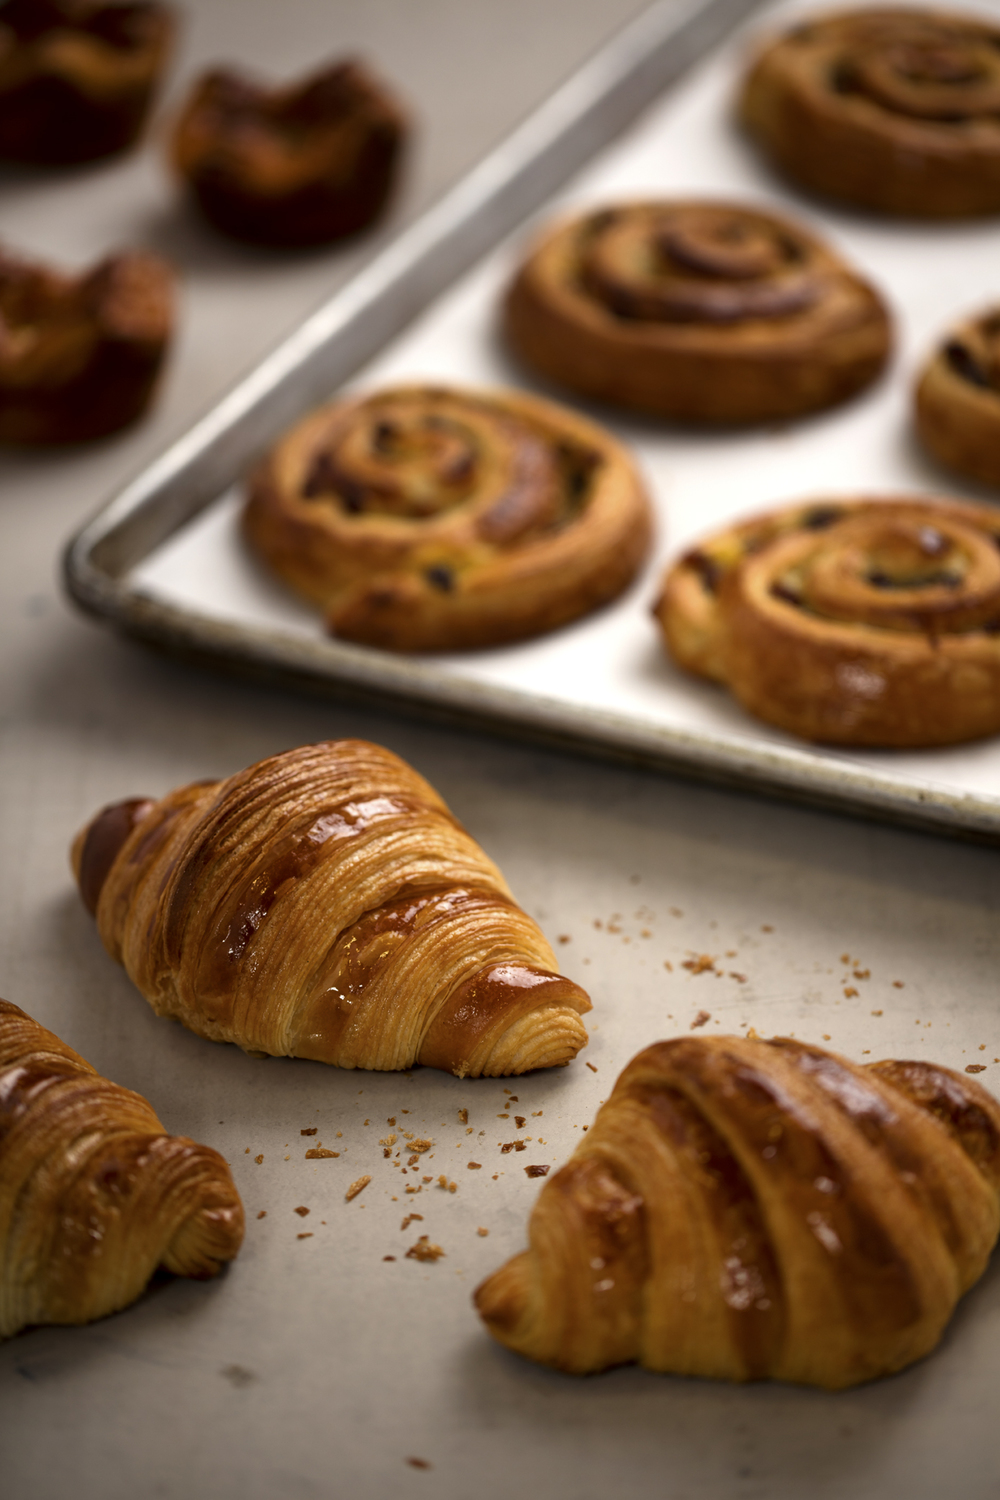 CROISSANTS  Baked daily in-house, our croissants are moist and buttery with a tender, flaky crust. A true taste of Paris.